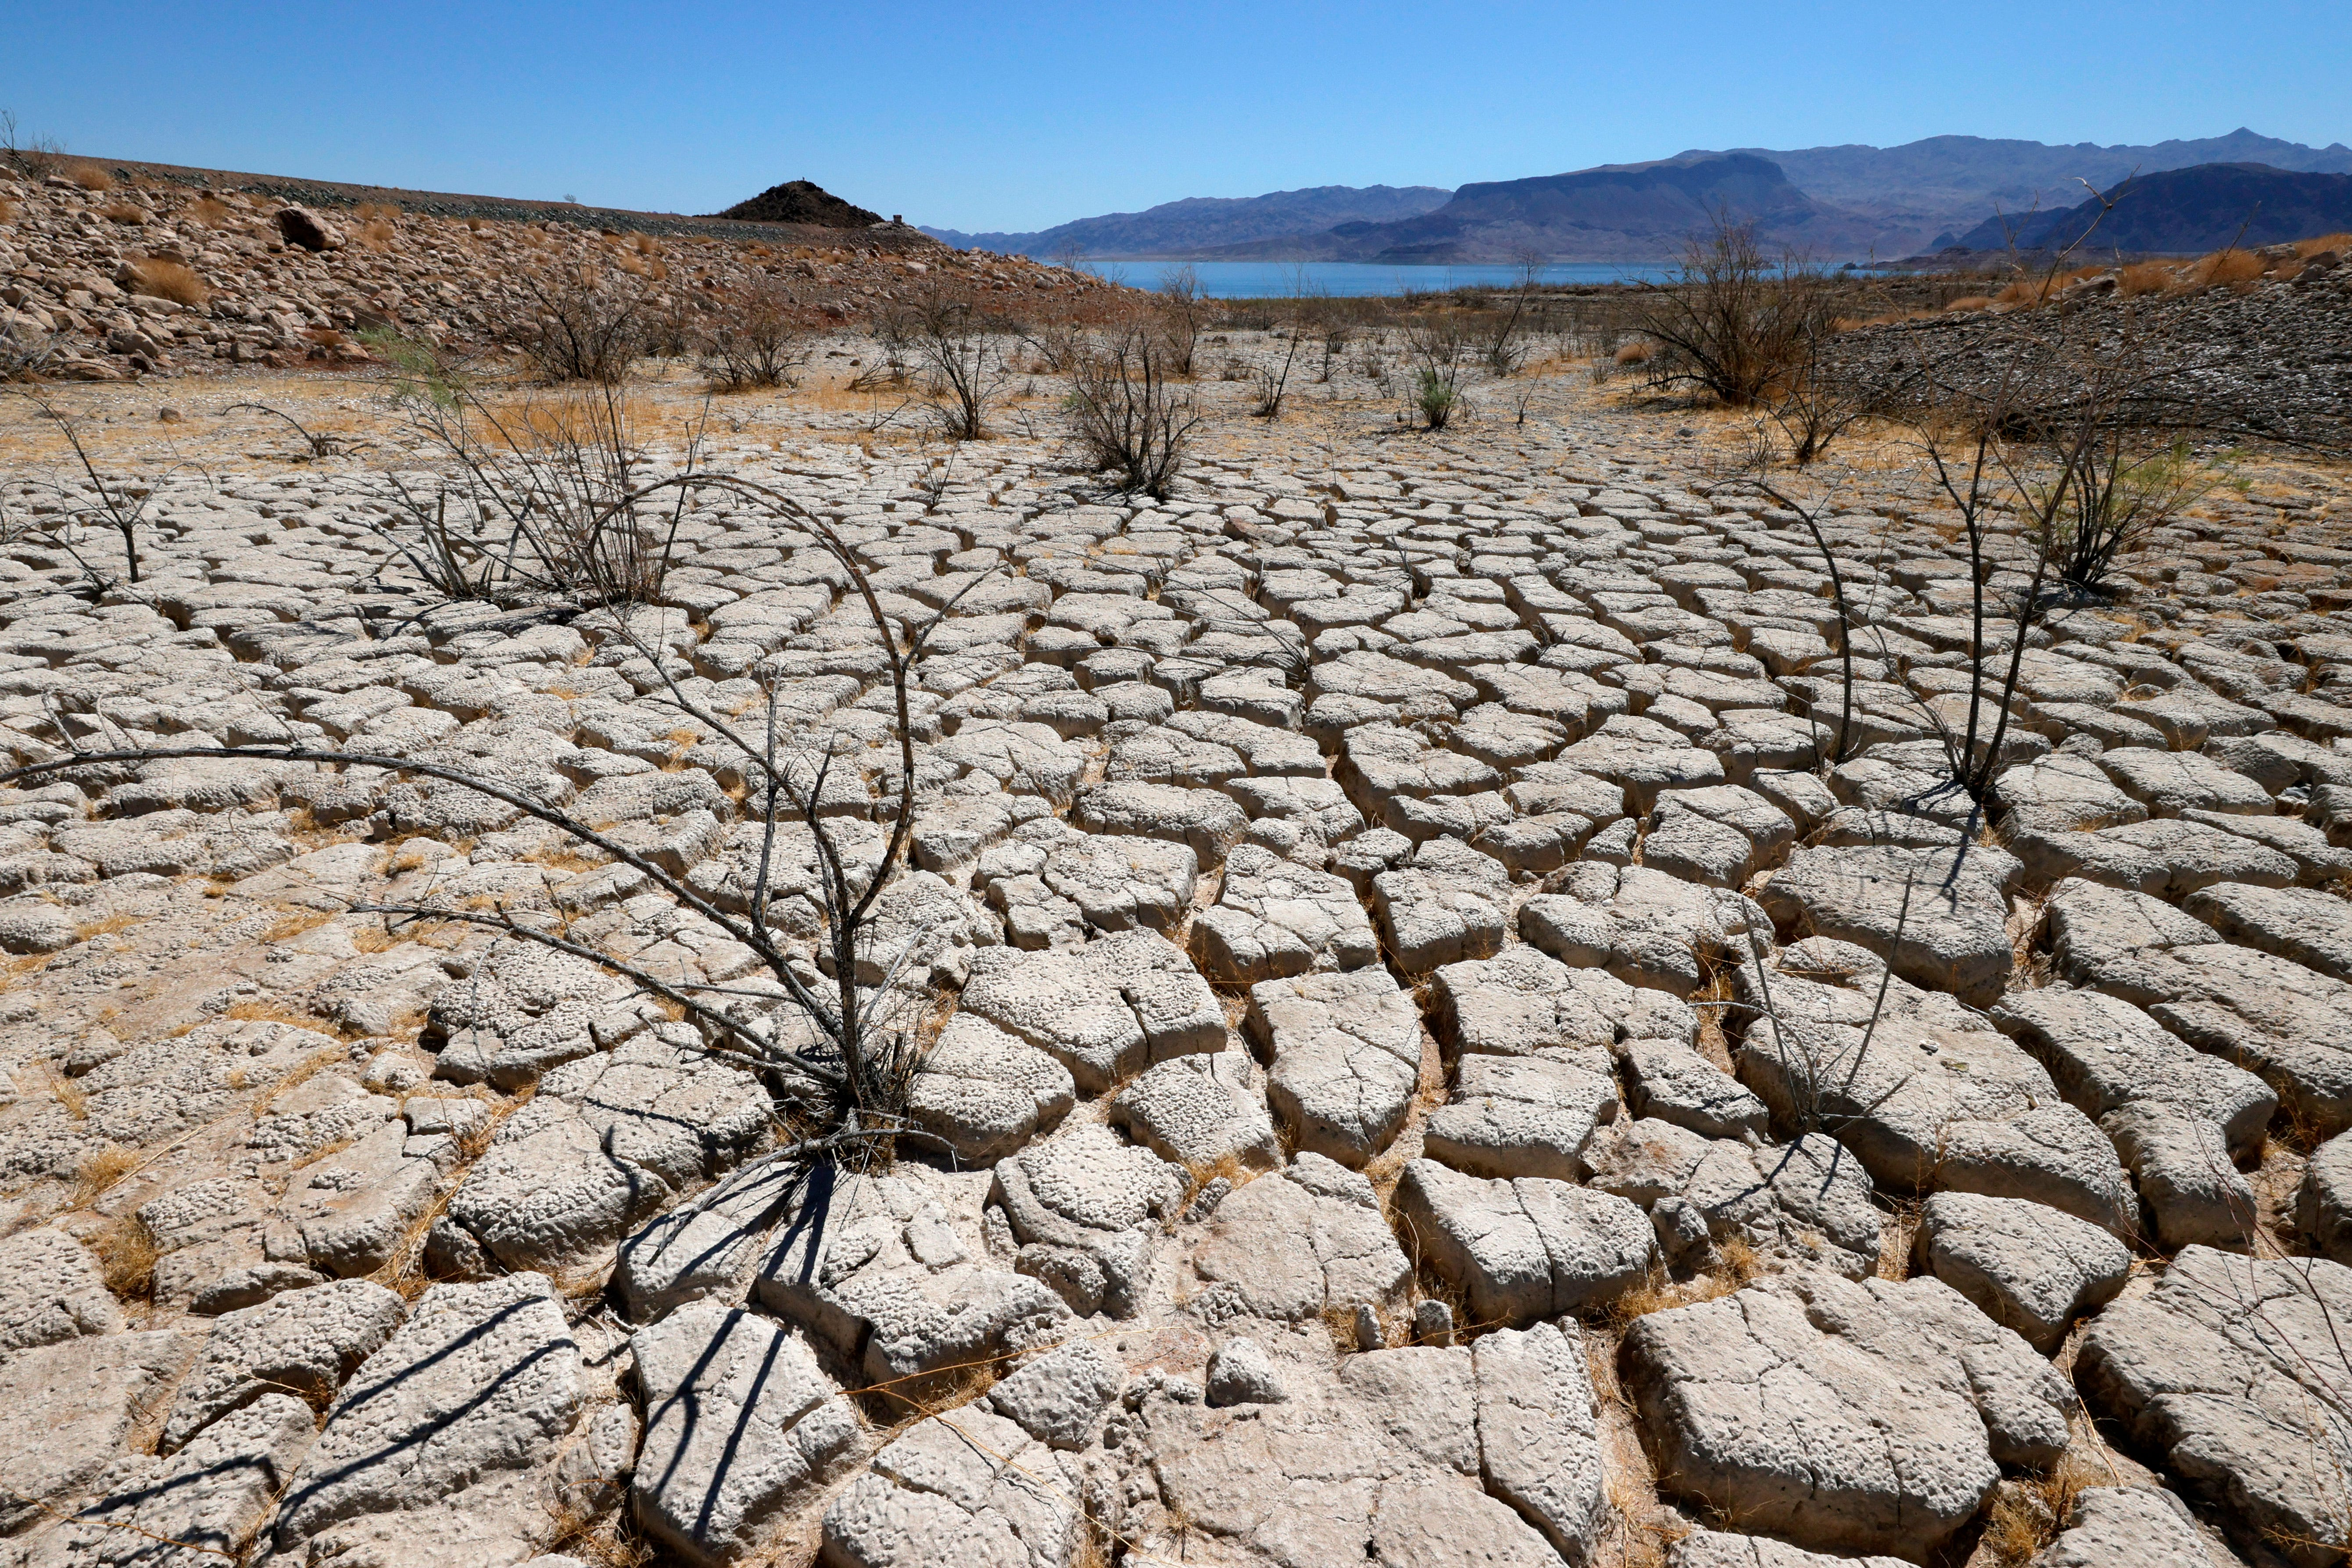 West's drought has no end in sight: 'If we do nothing, it's going to be really bad'